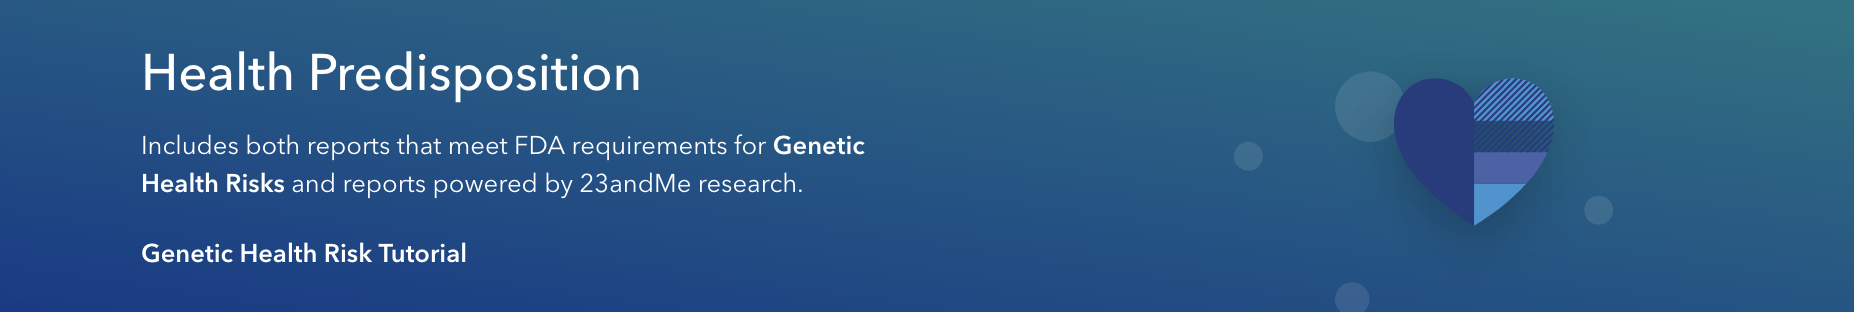 Genetic health risk reports powered by 23andMe research.